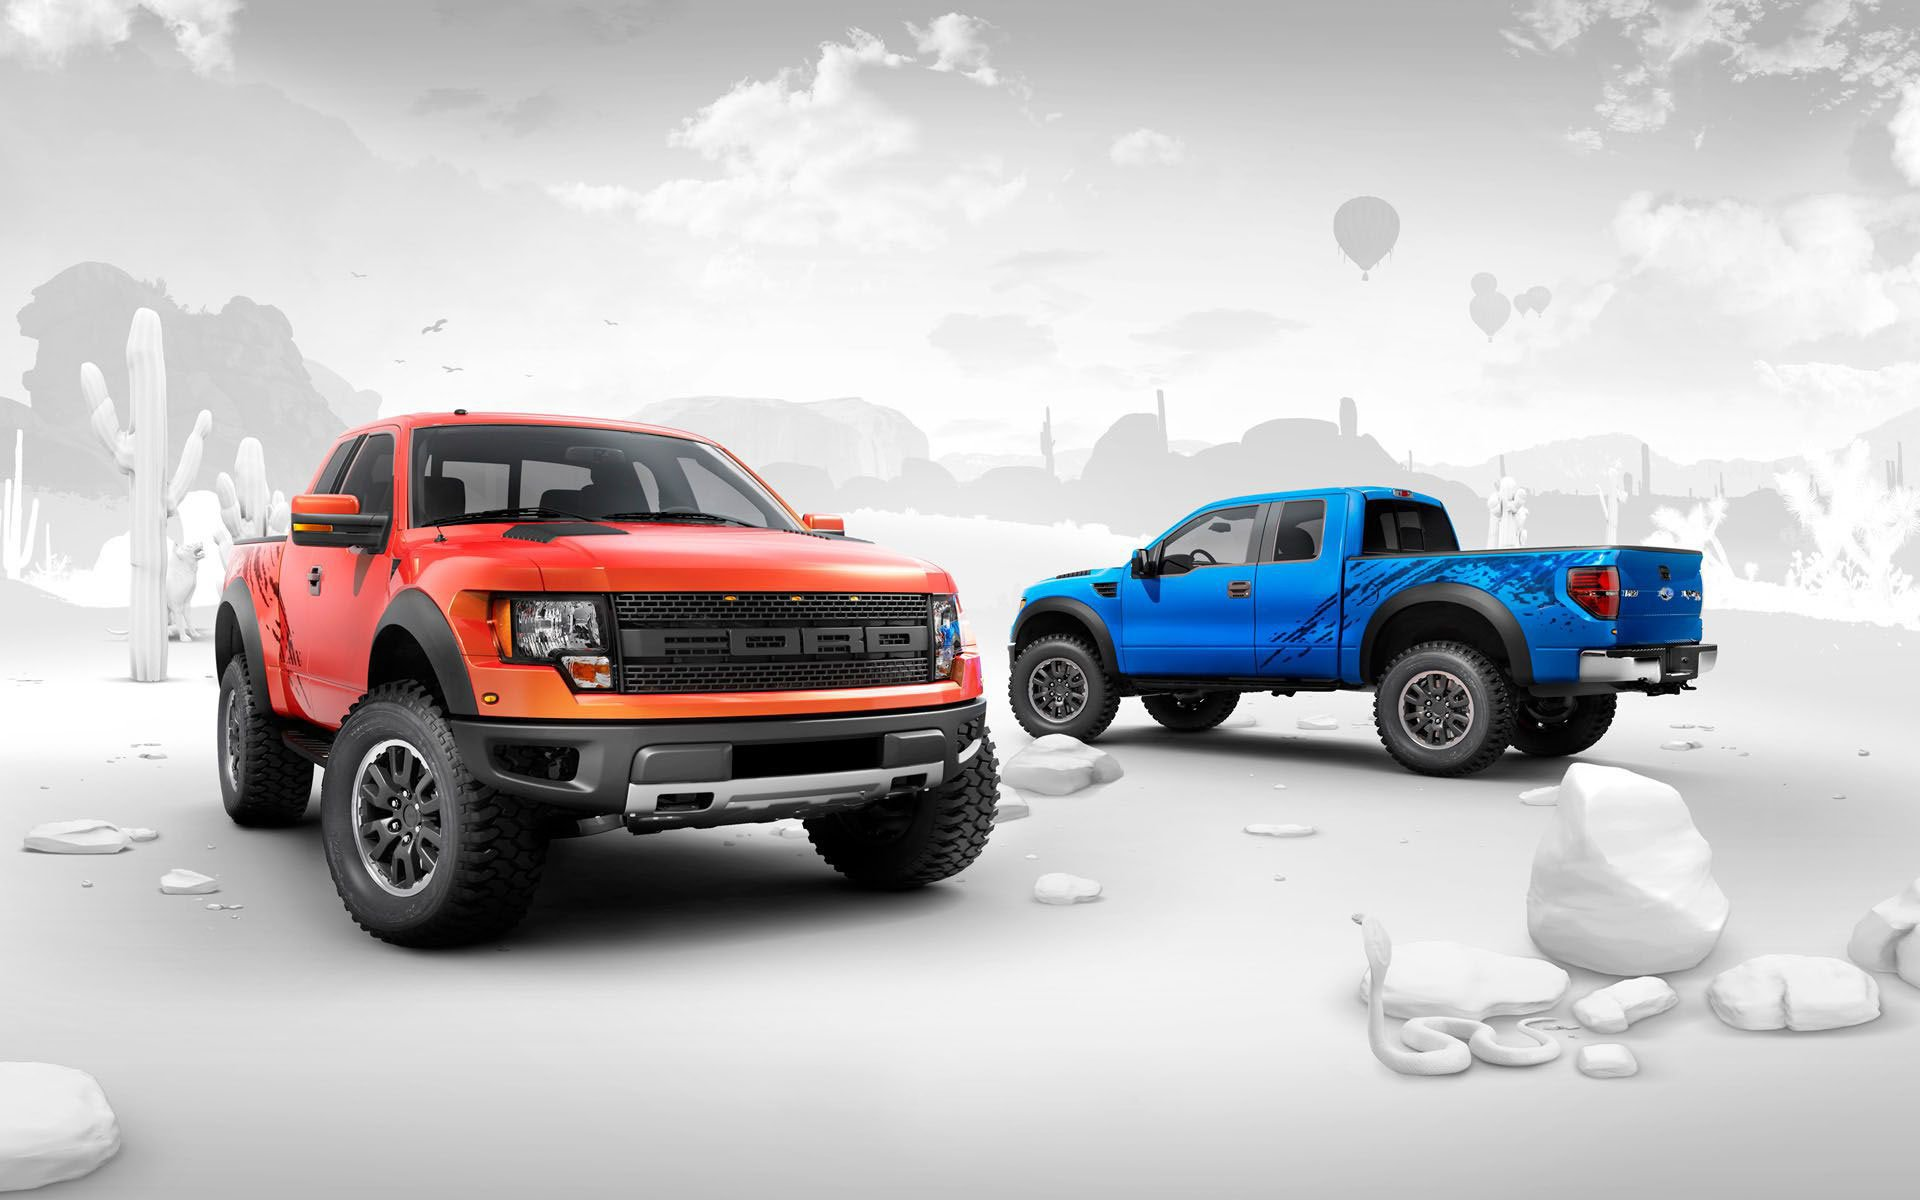 50 ford raptor hd wallpapers background images wallpaper abyss hd wallpaper background image id340869 1920x1200 vehicles ford raptor 7 like voltagebd Choice Image